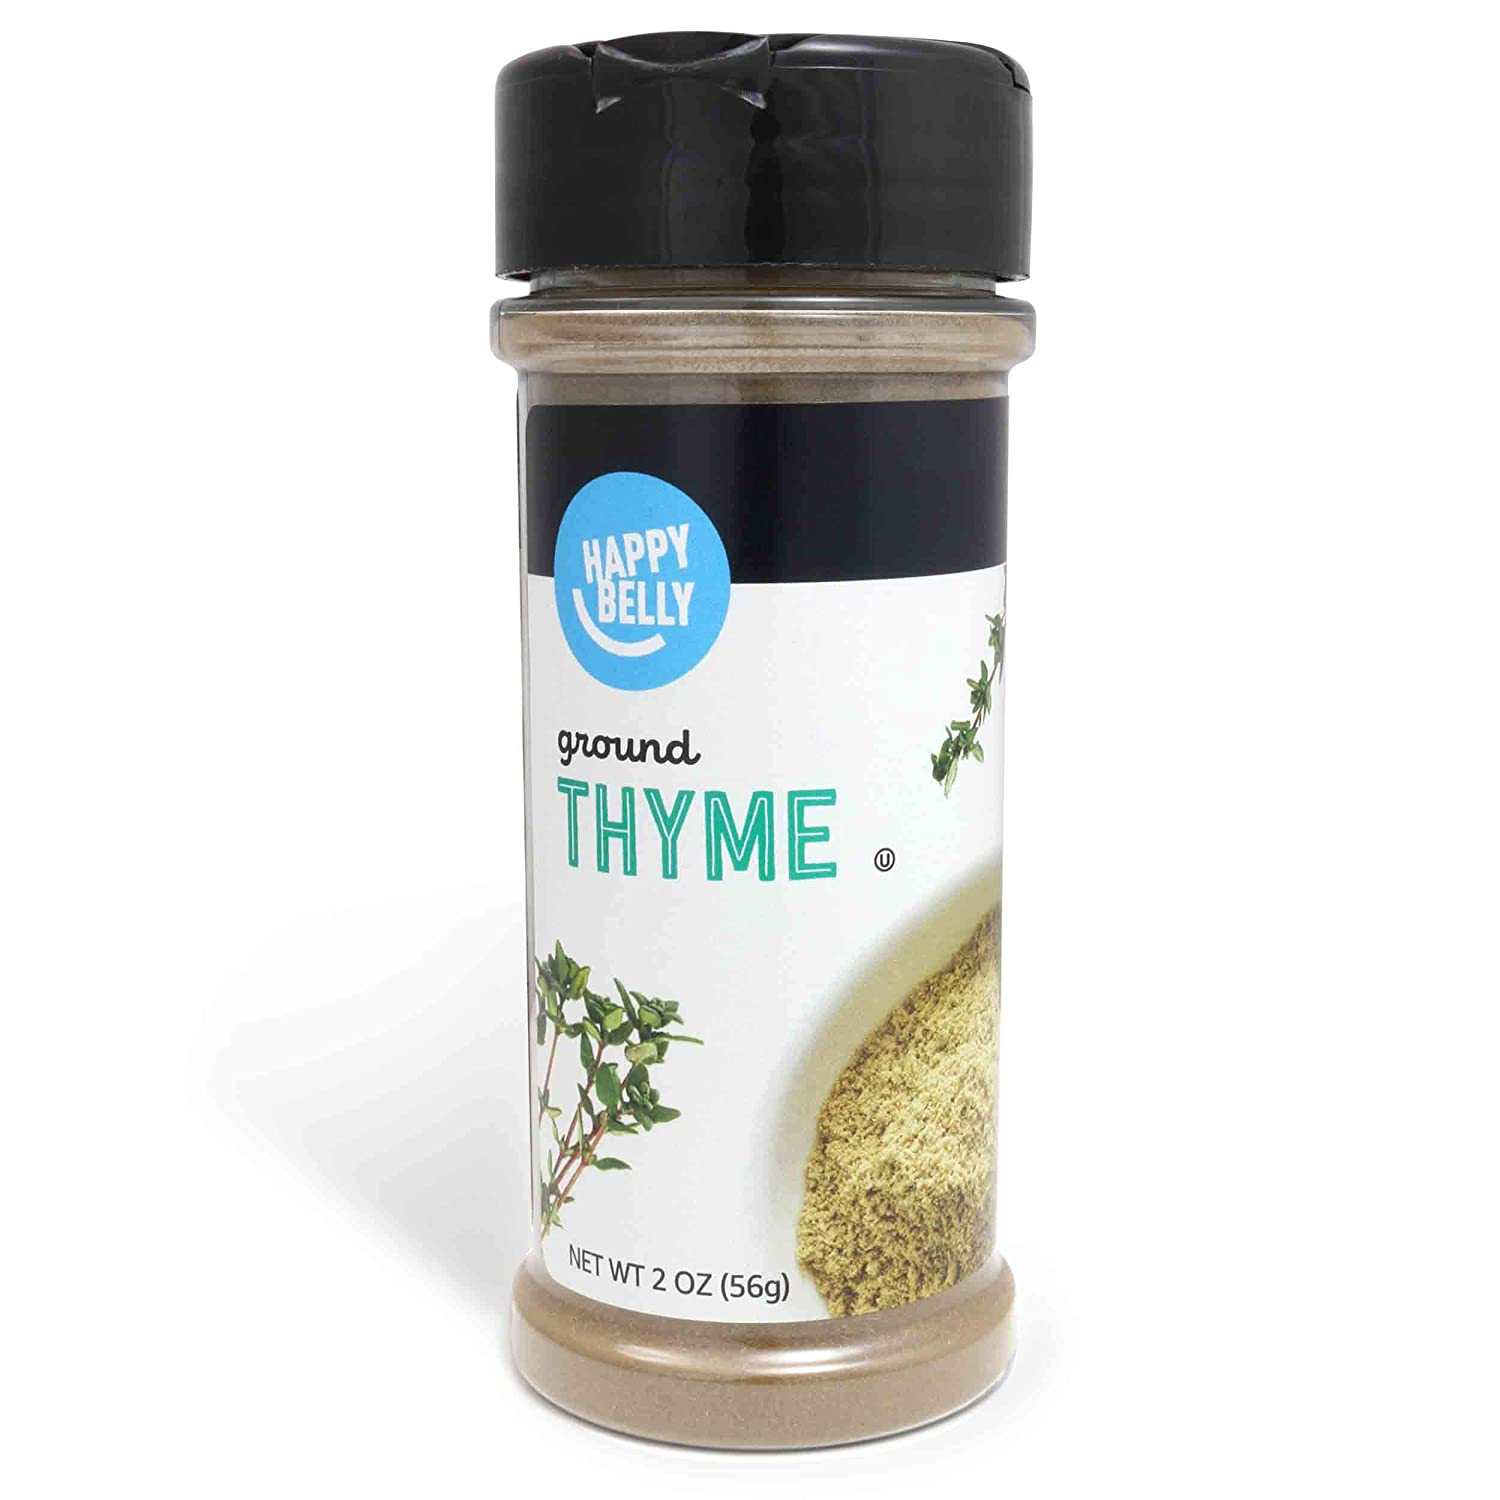 Amazon Brand - Happy Belly Thyme, Ground, 2 Ounces